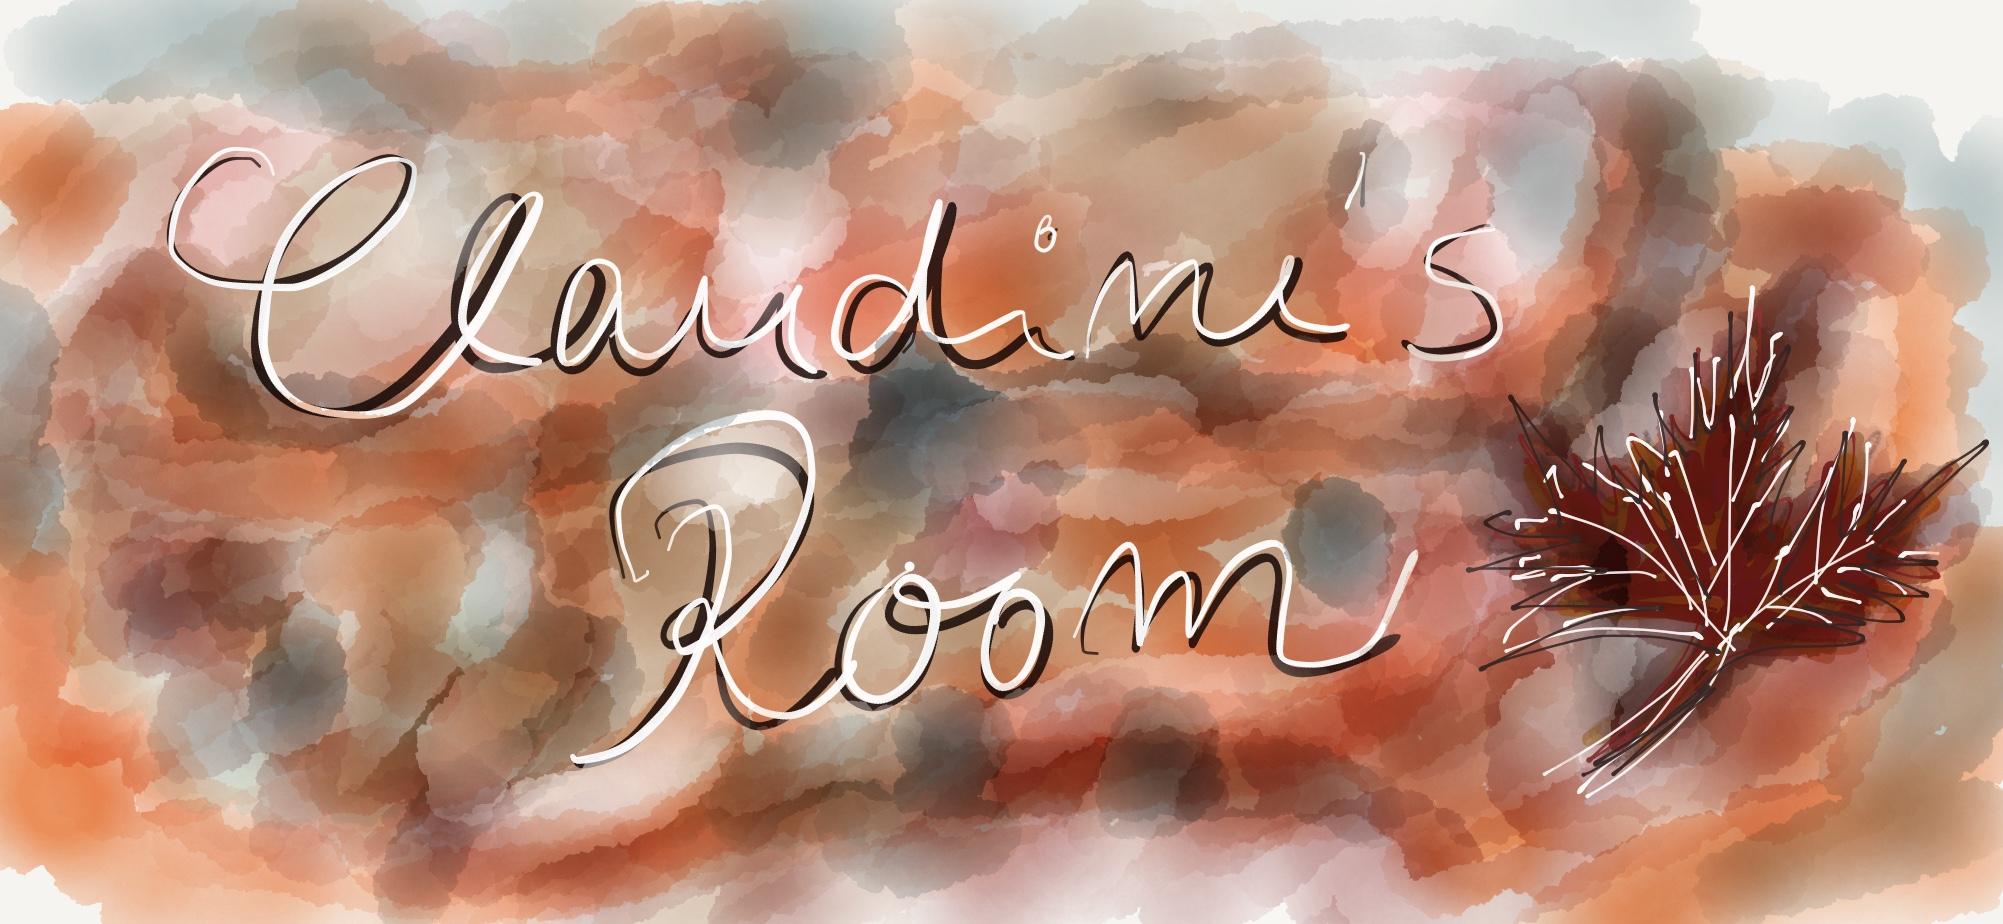 claudine's room